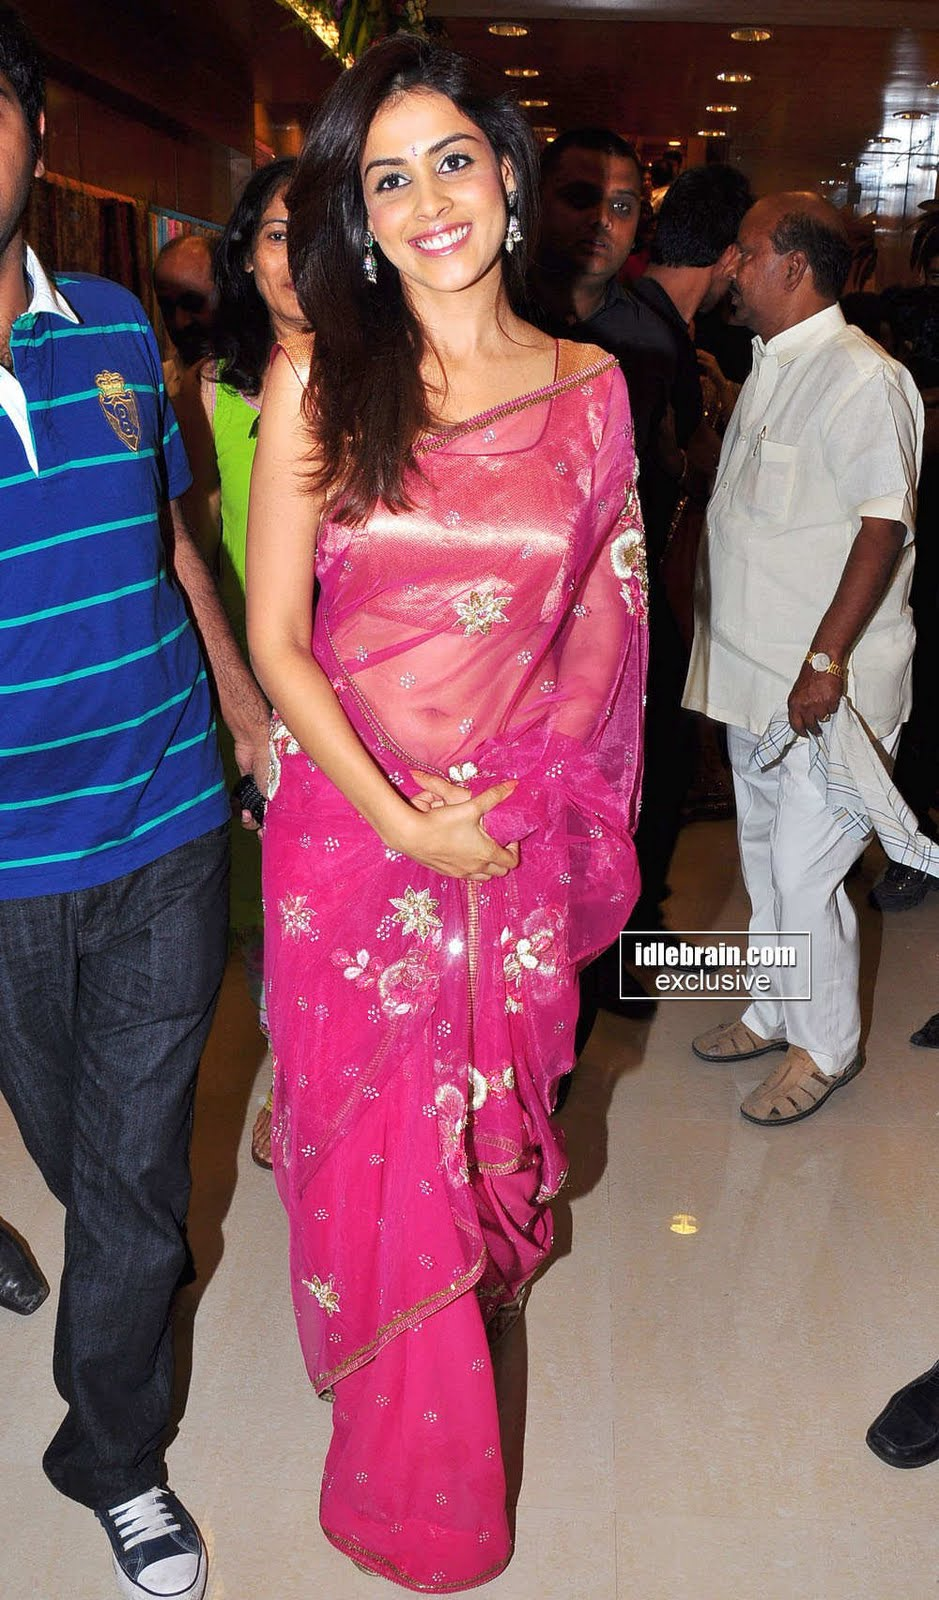 genelia in saree genelia looking gorgeous in this stylish pink saree